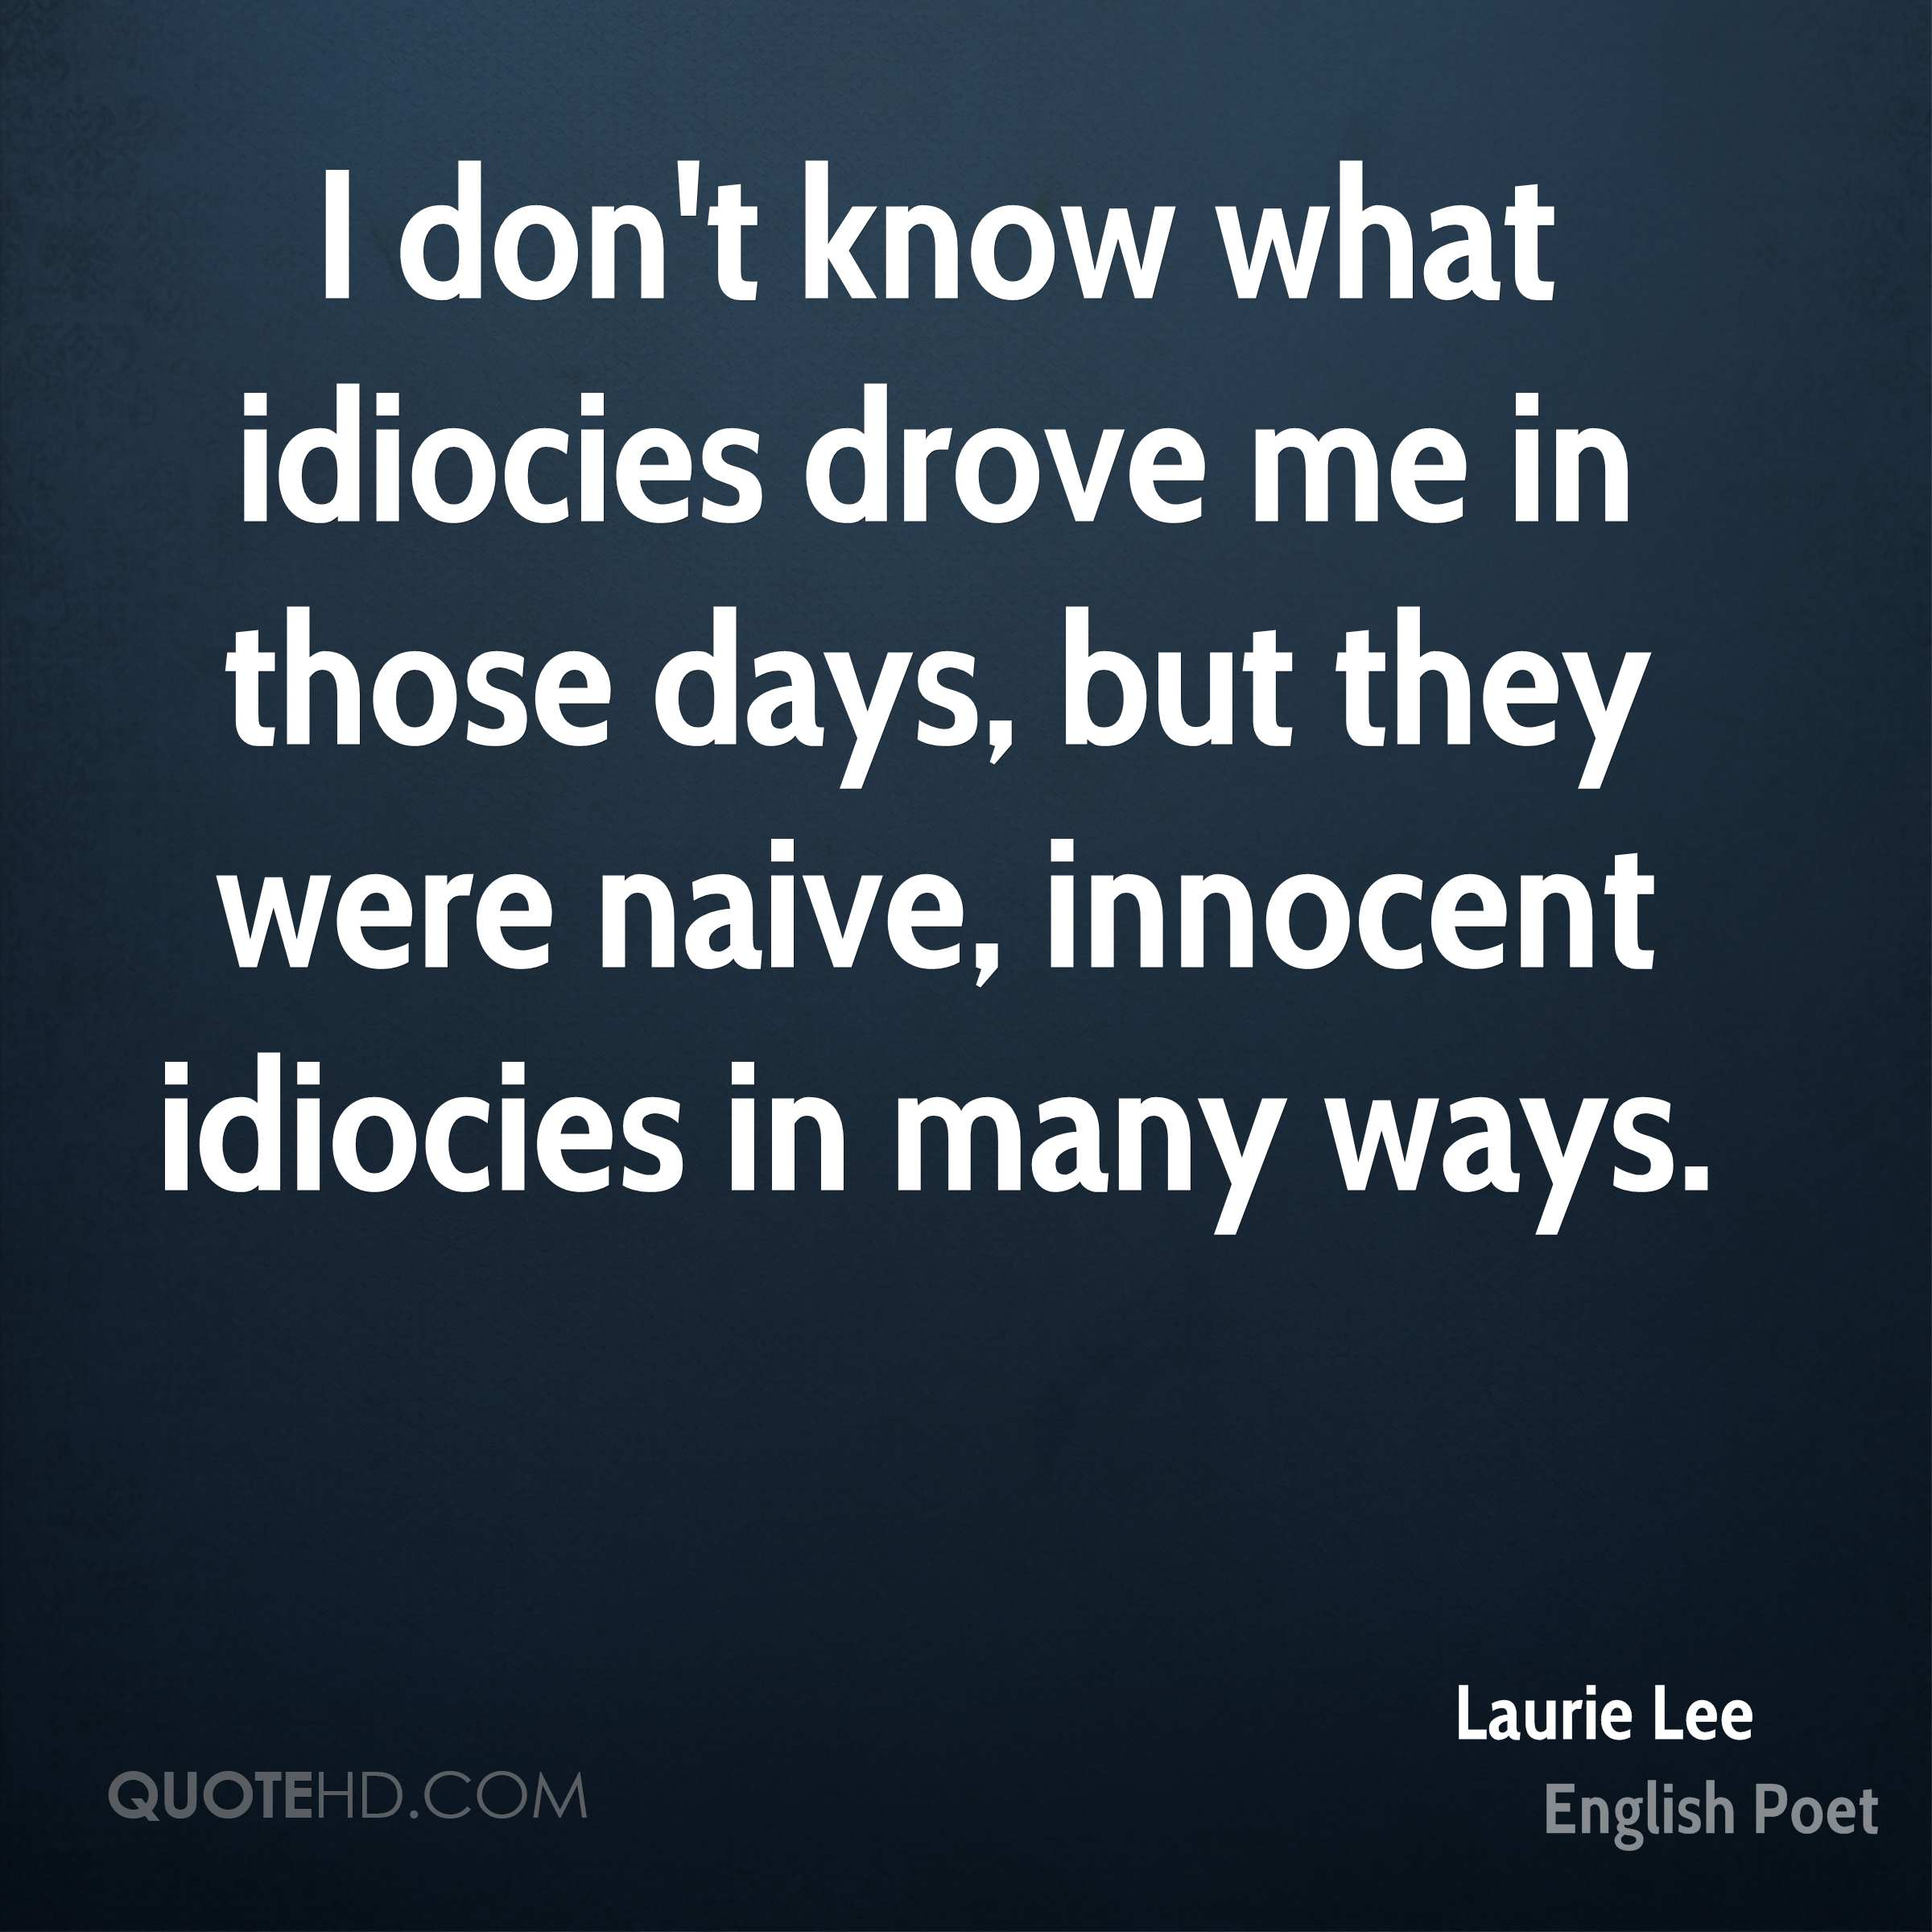 I don't know what idiocies drove me in those days, but they were naive, innocent idiocies in many ways.